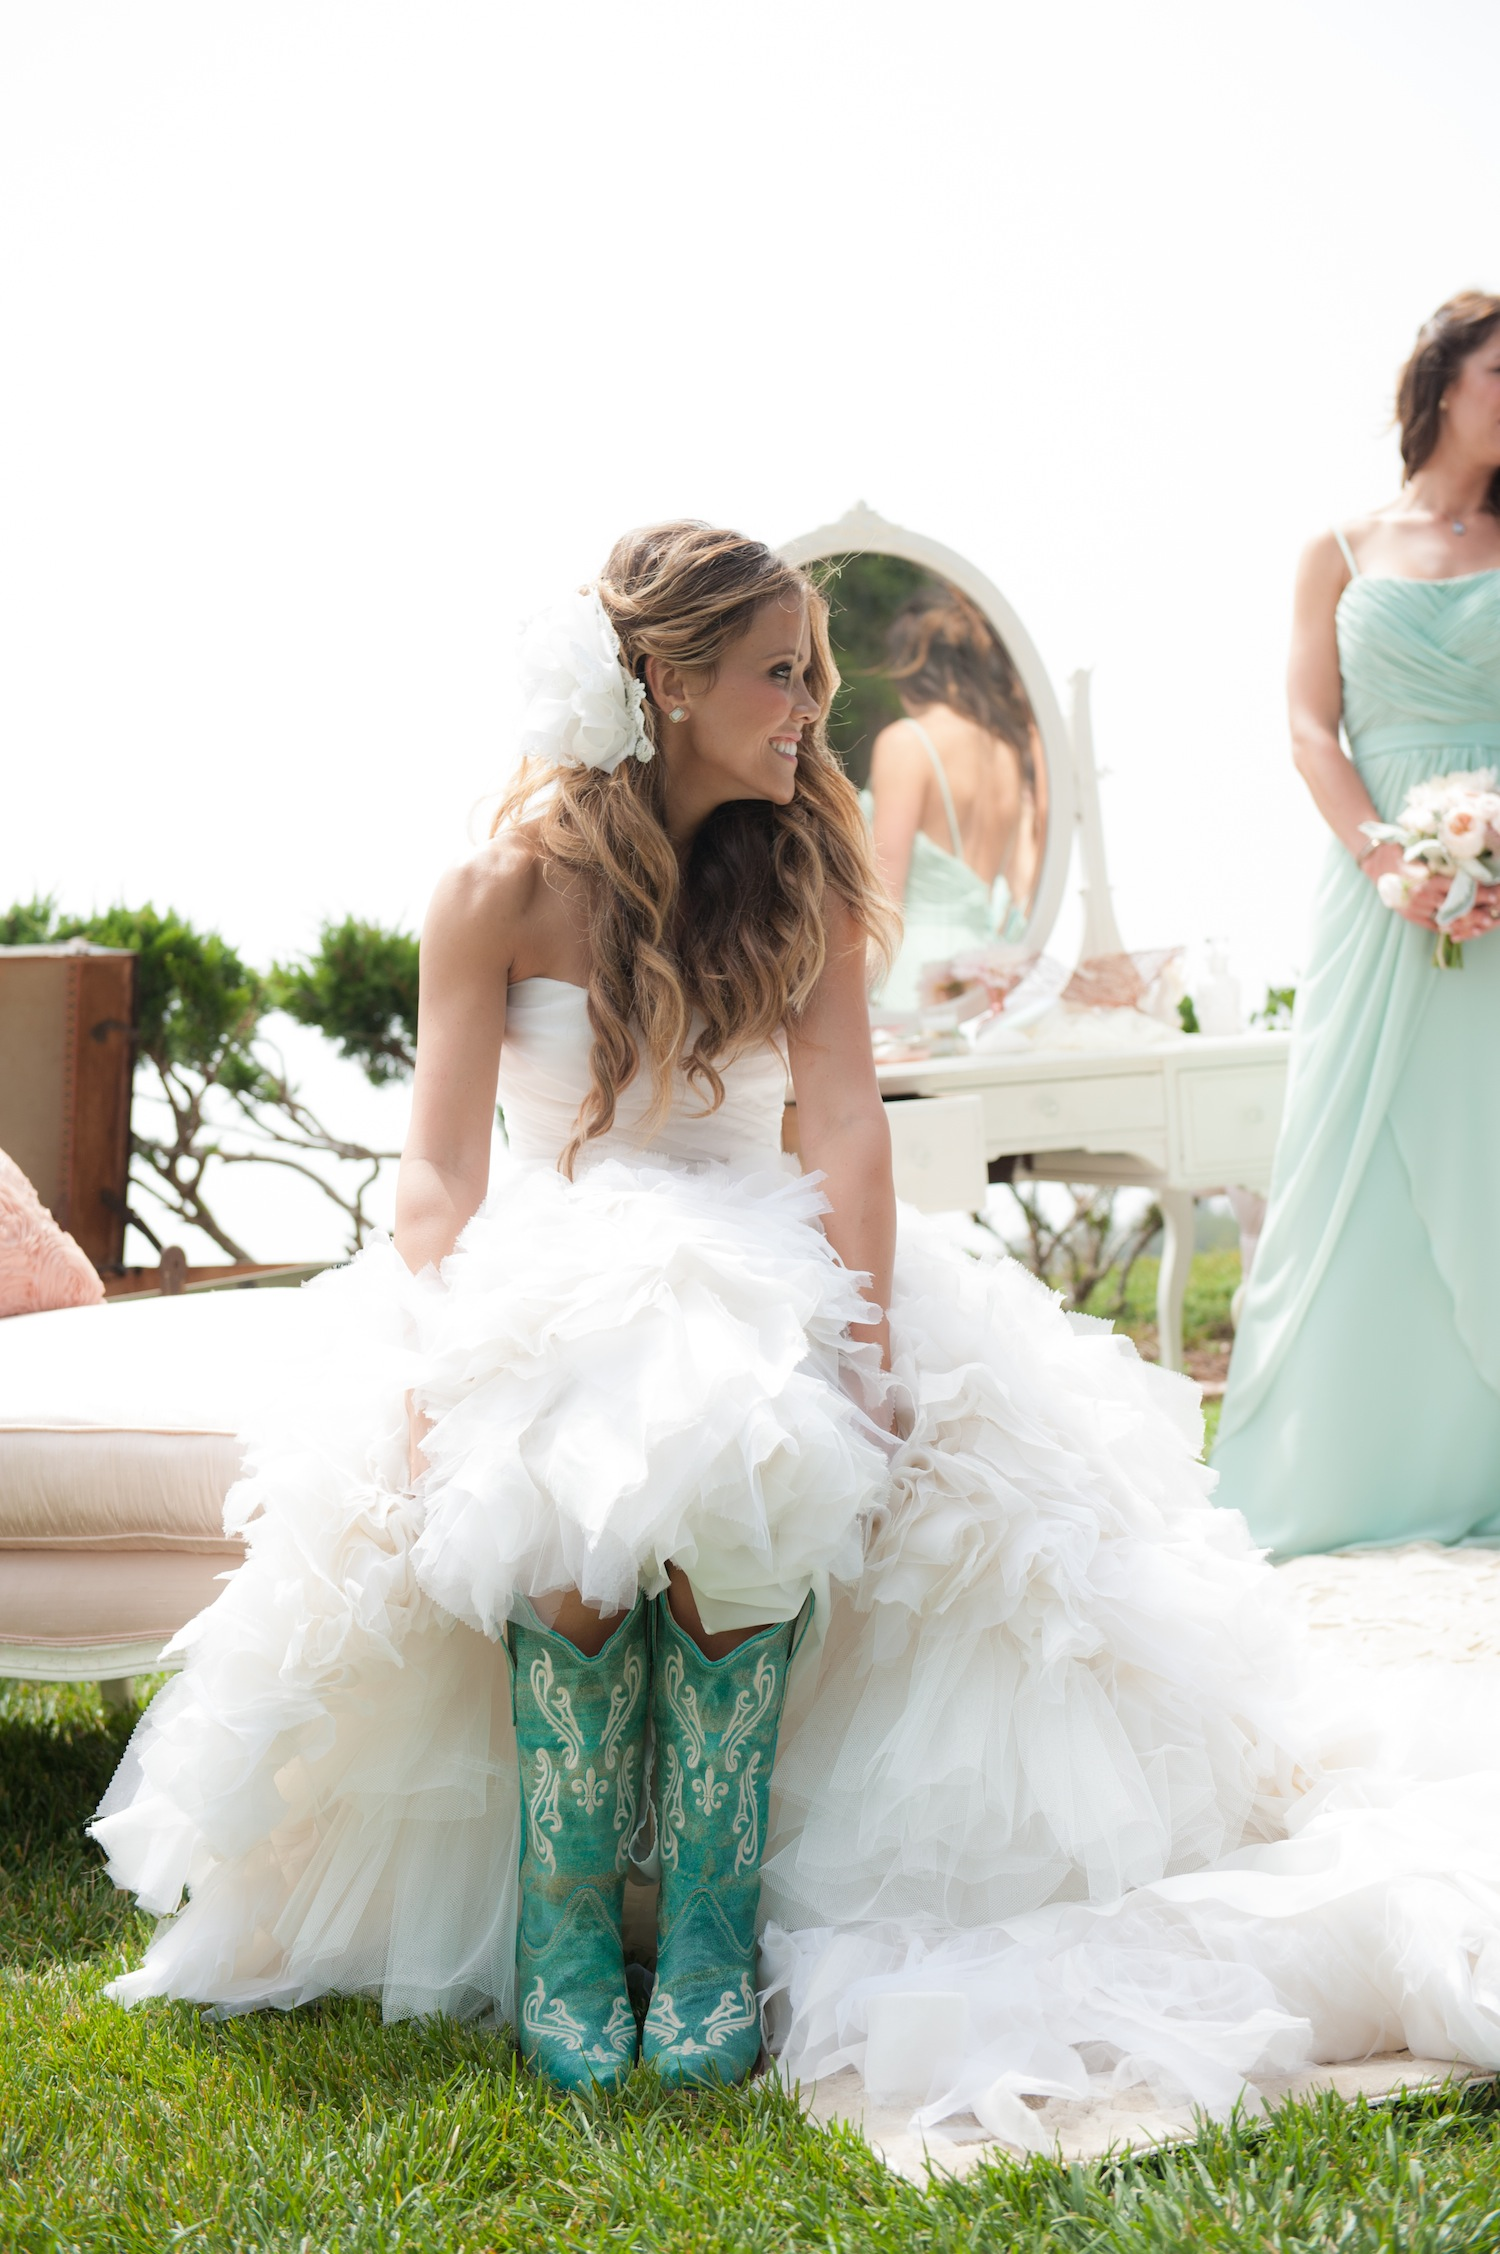 Stylish Cowgirl Boots For The Bridal Party On The Wedding